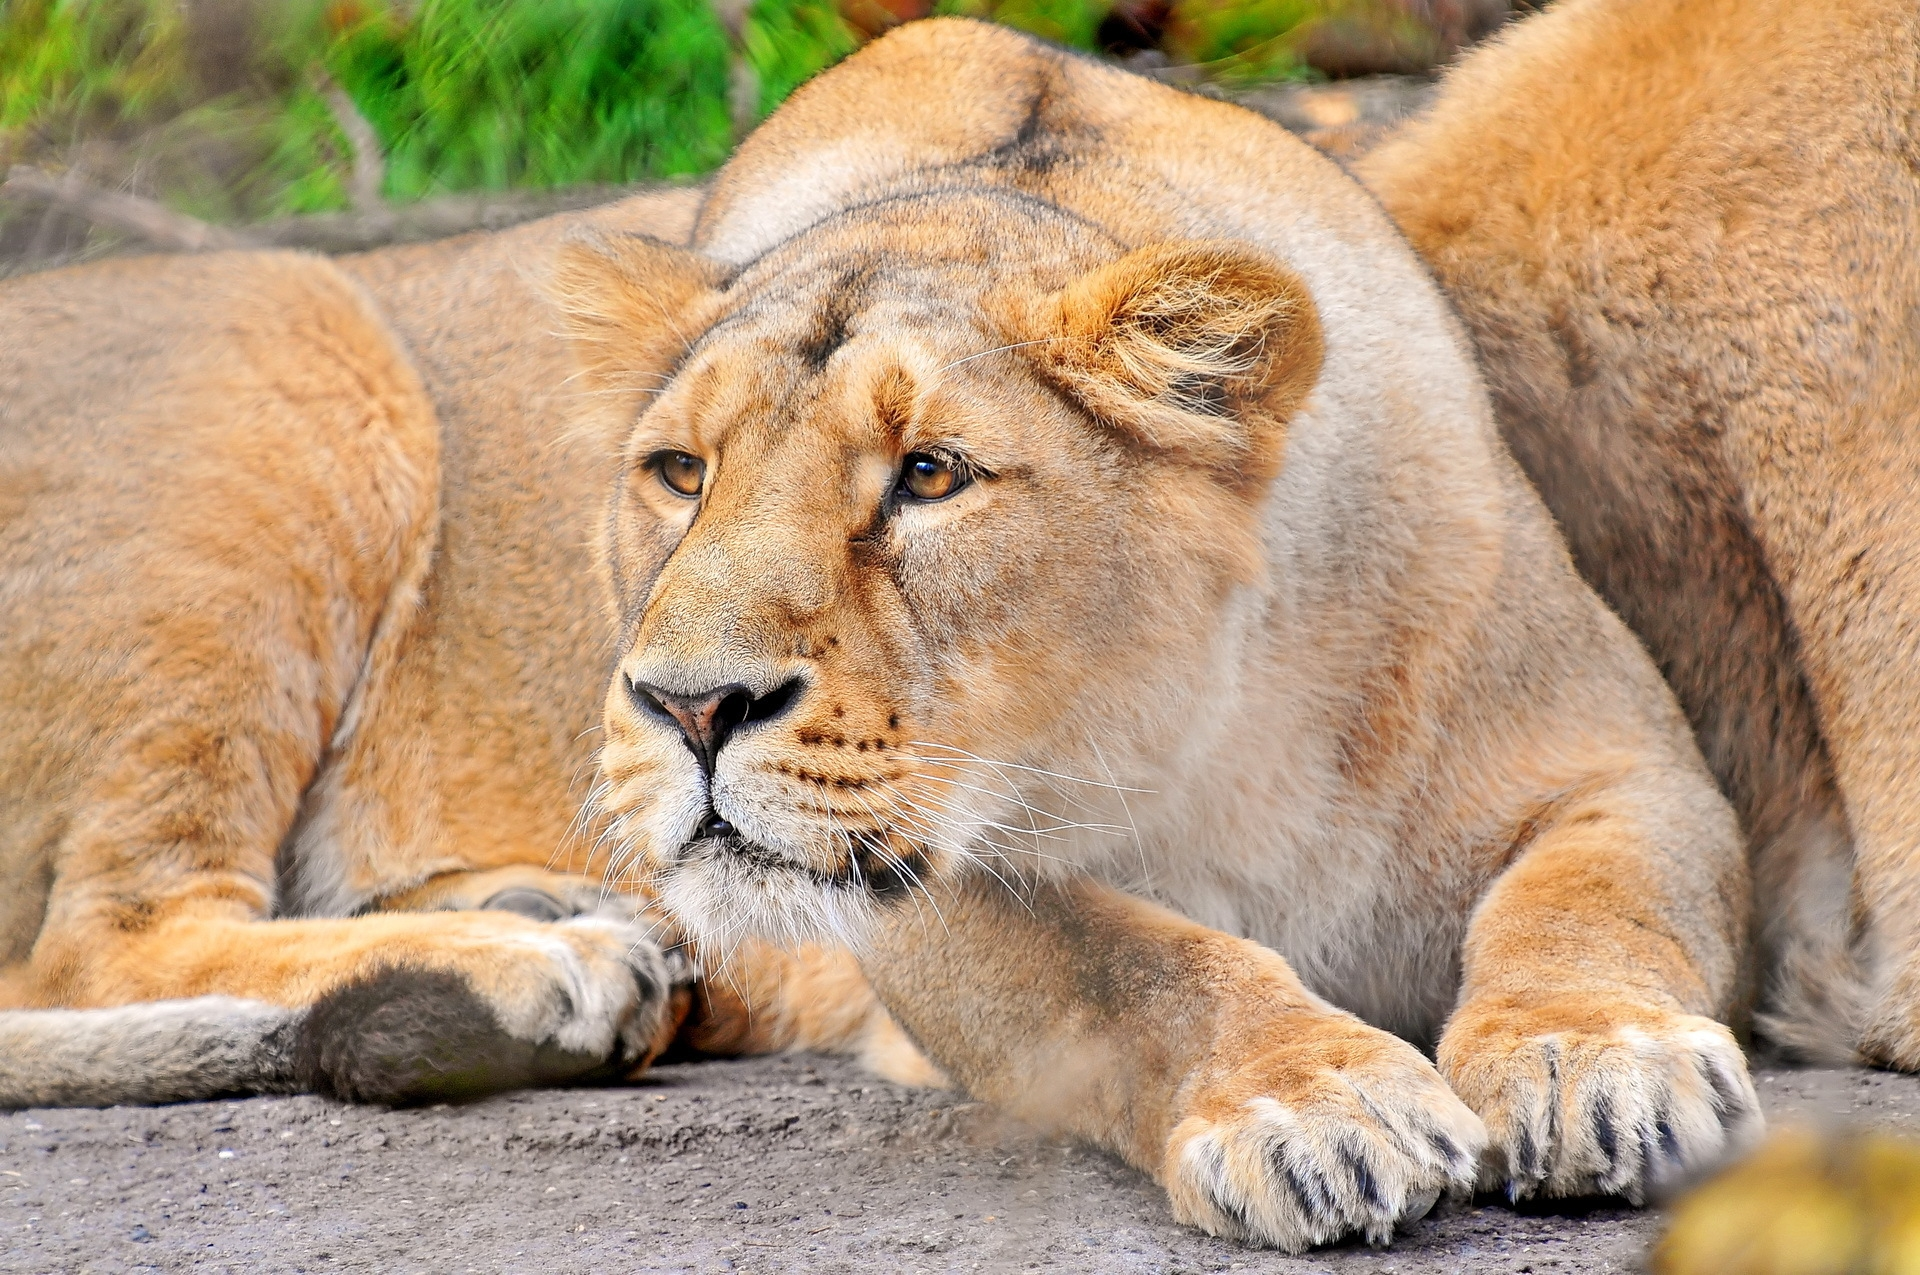 70437 download wallpaper Animals, Lion, Muzzle, Lioness, Predator screensavers and pictures for free